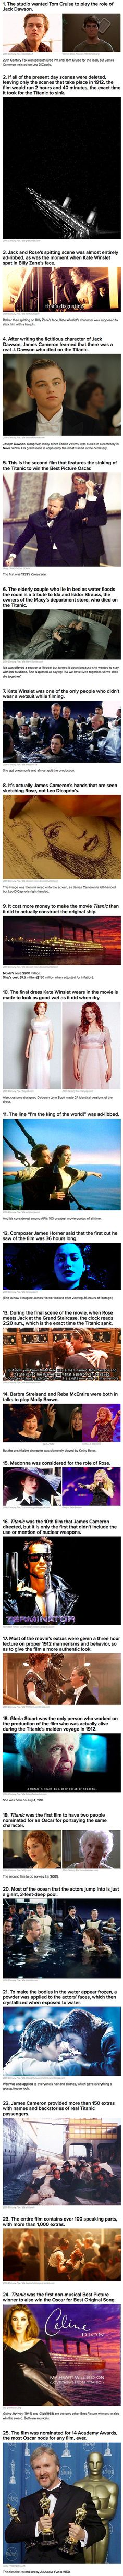 Some very interesting facts you may want to know if you're a fan of the movie Titanic, starring Leonardo DiCaprio, Kate Winslet and hundreds more! Xmen, Weird Facts, Fun Facts, Random Facts, Random Stuff, Movies Showing, Movies And Tv Shows, Titanic Quotes, Titanic Movie Facts